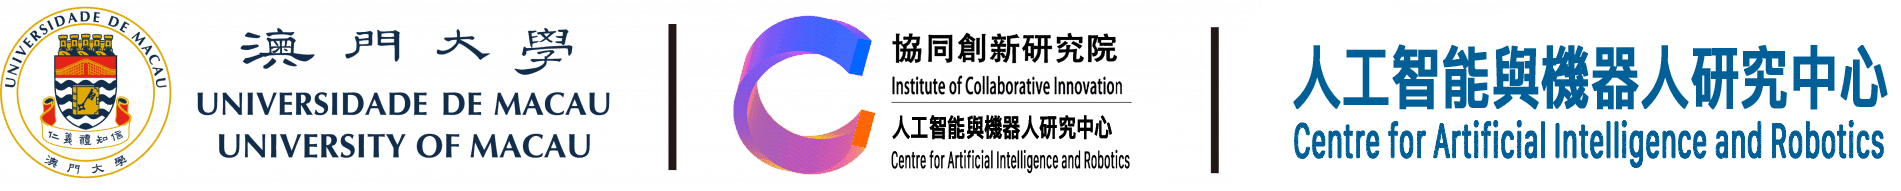 University of Macau | Centre for Artificial Intelligence and Robotics Logo